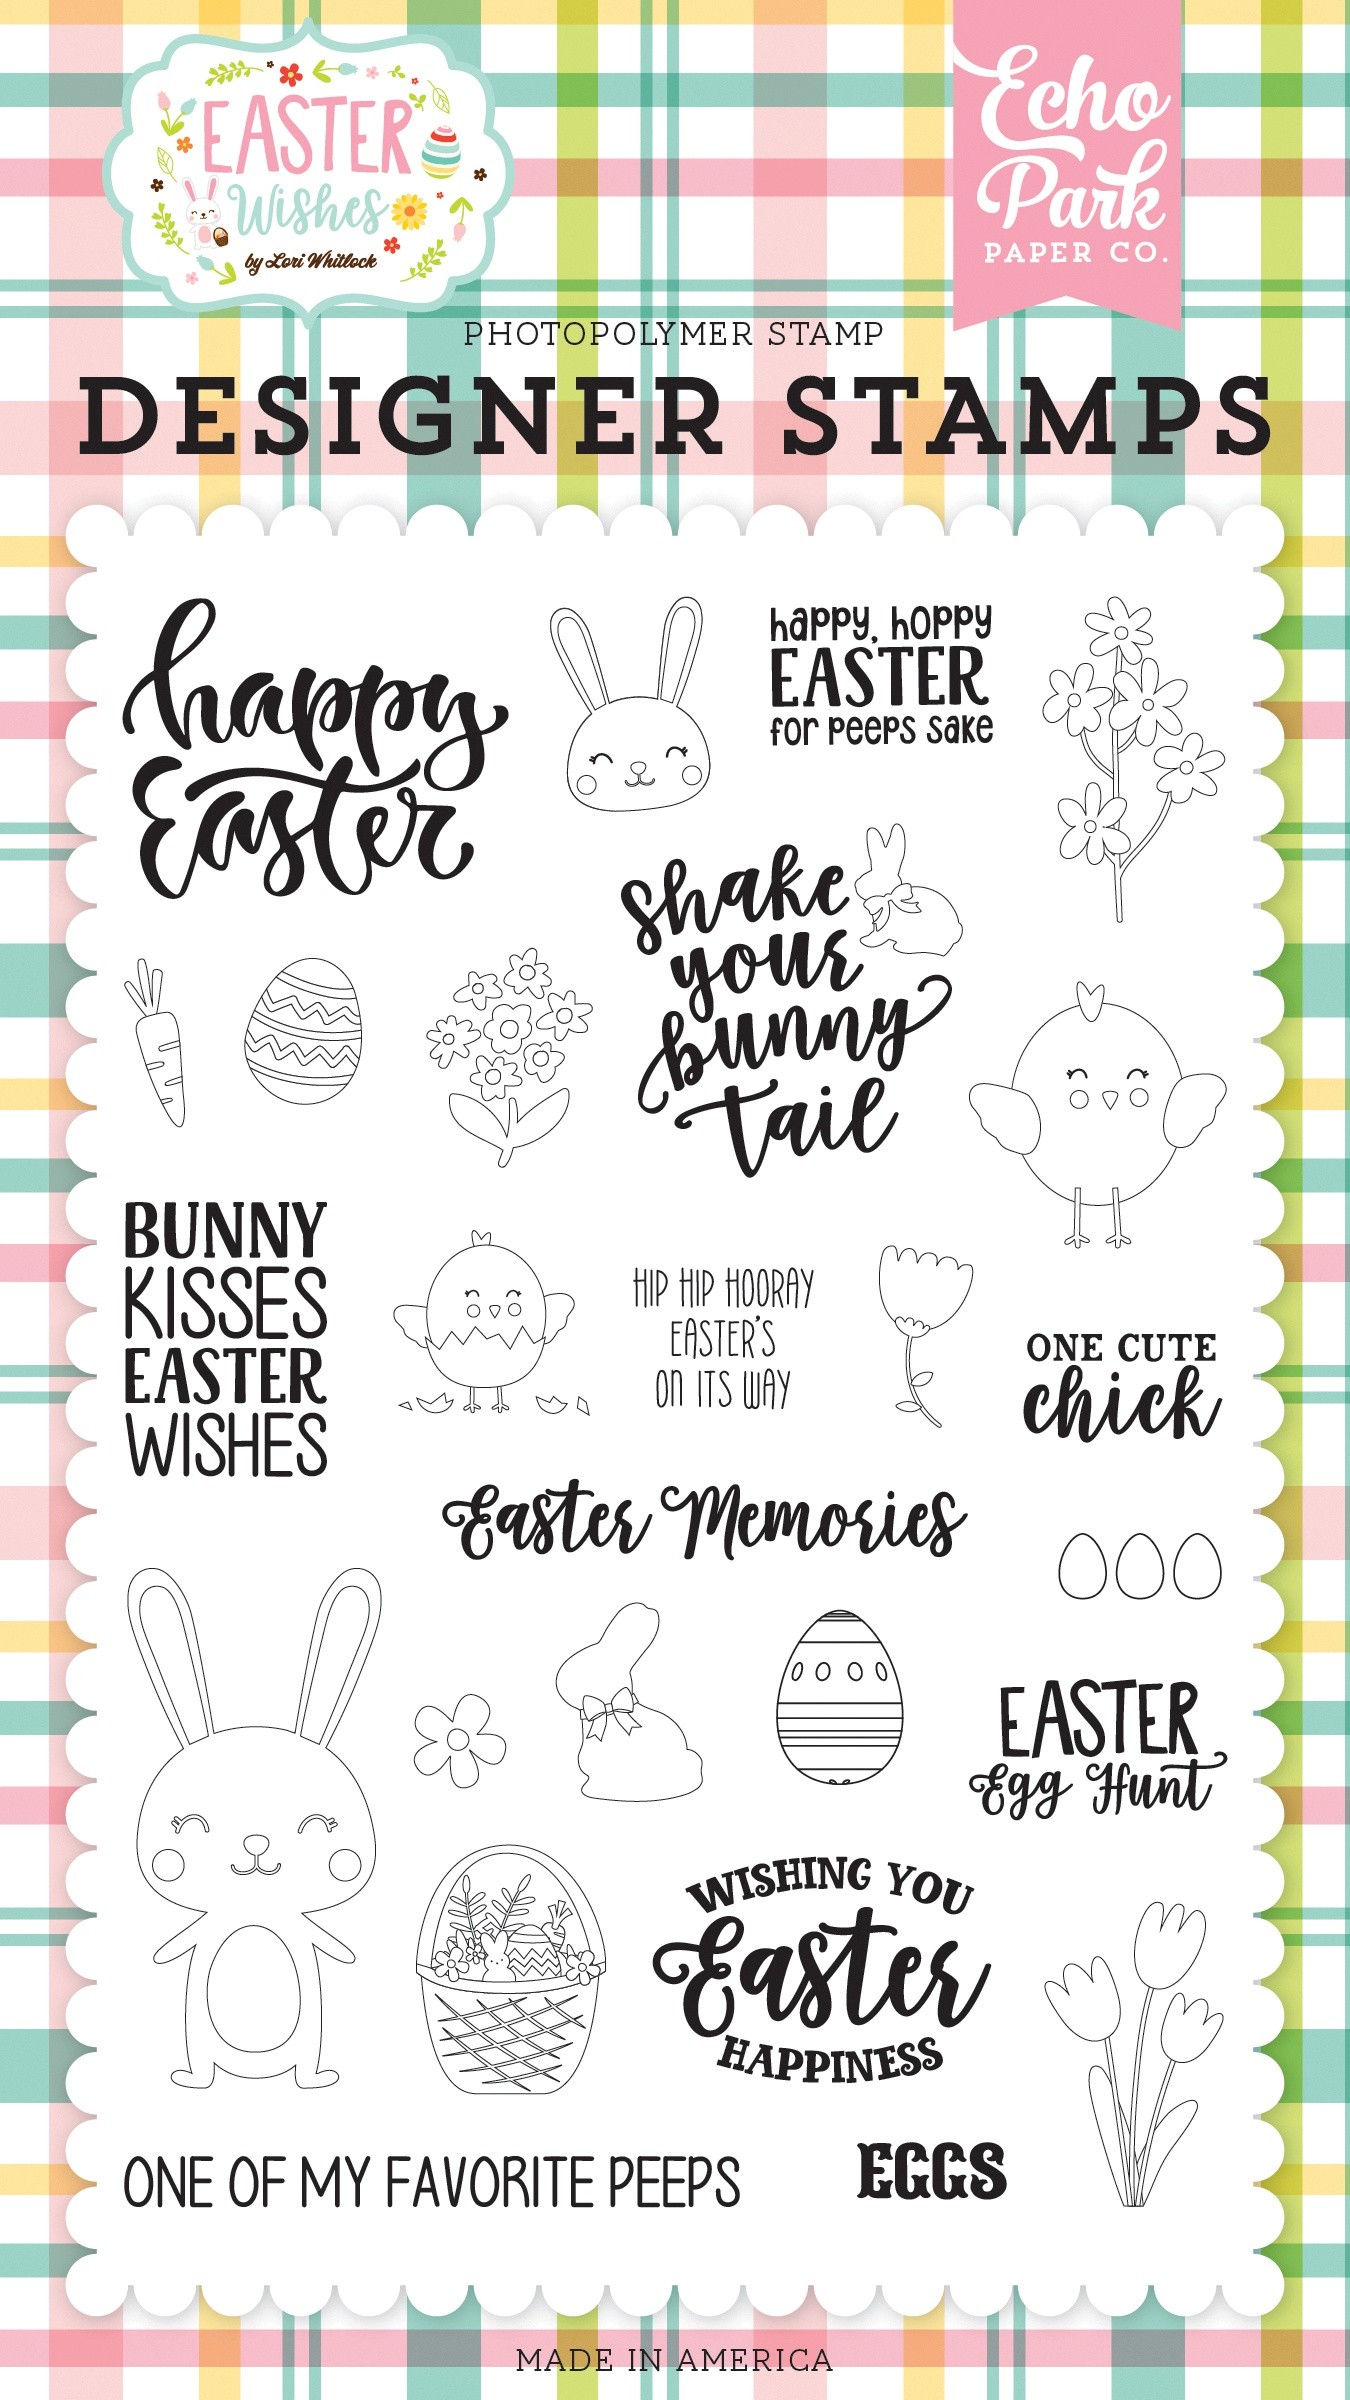 SSET - EASTER WISHES MEMORIES